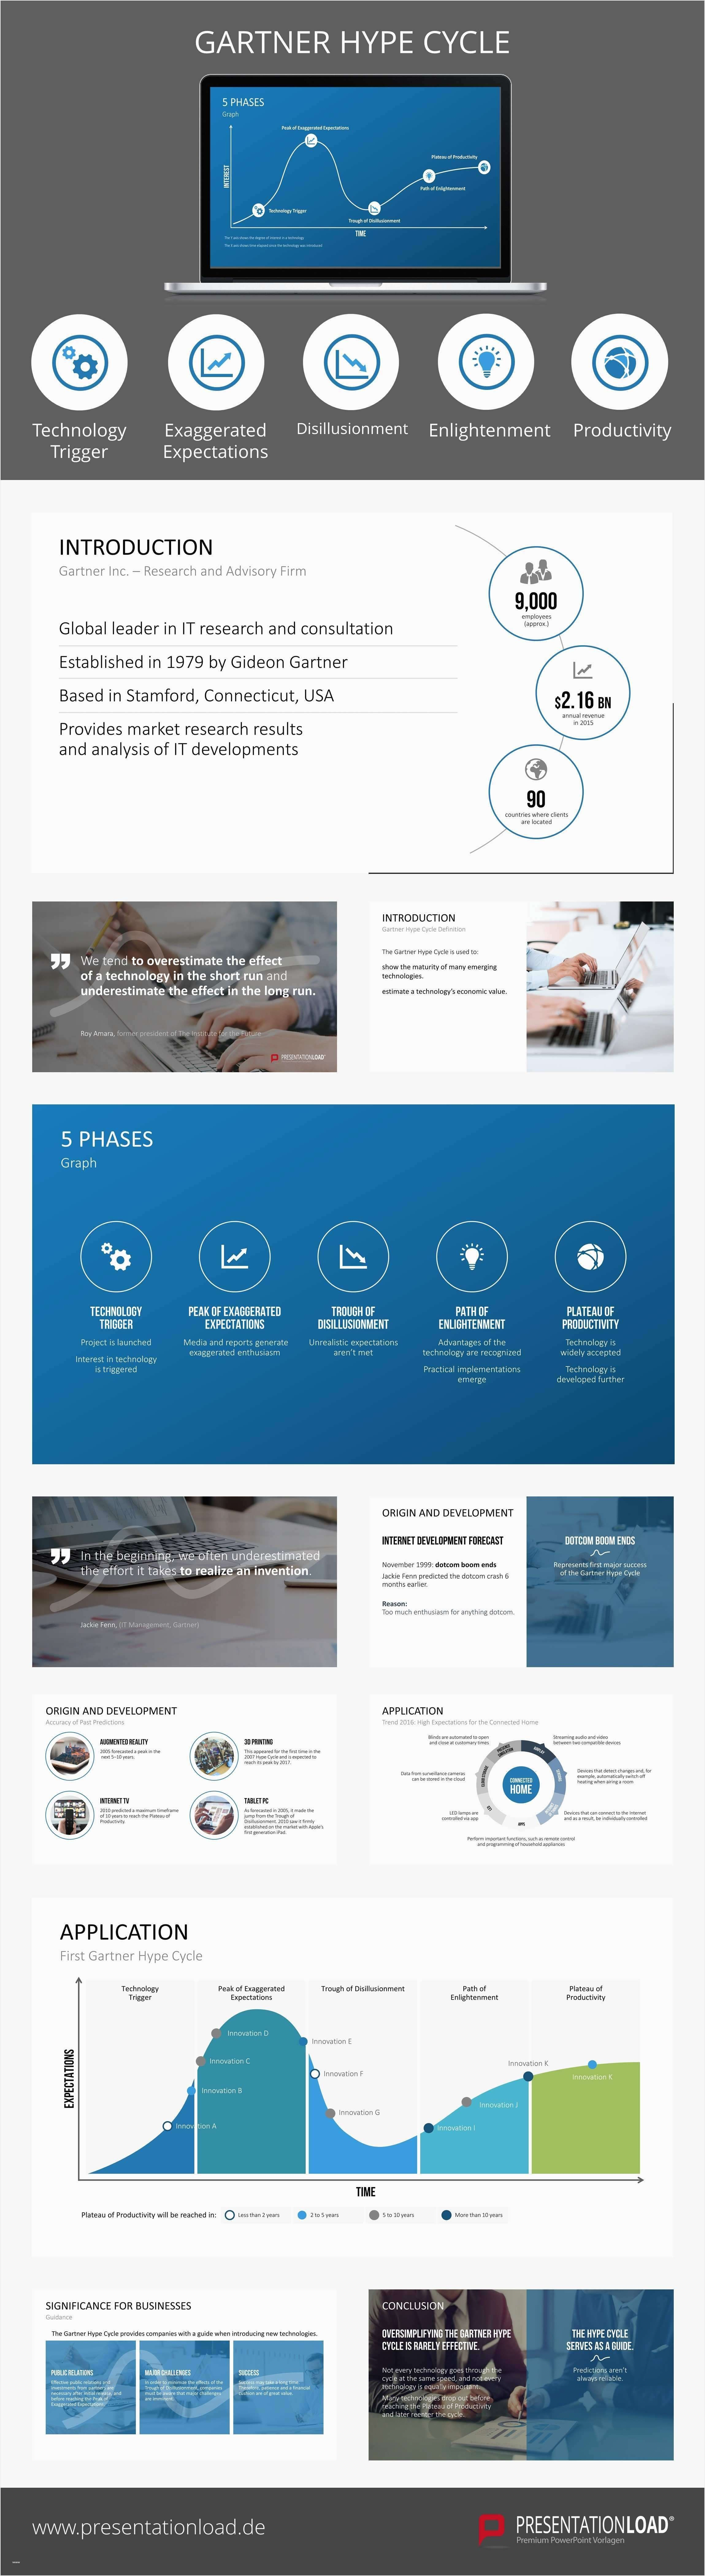 Ampad Business Card Templates  Caquetapositivo With Regard To Gartner Business Cards Template